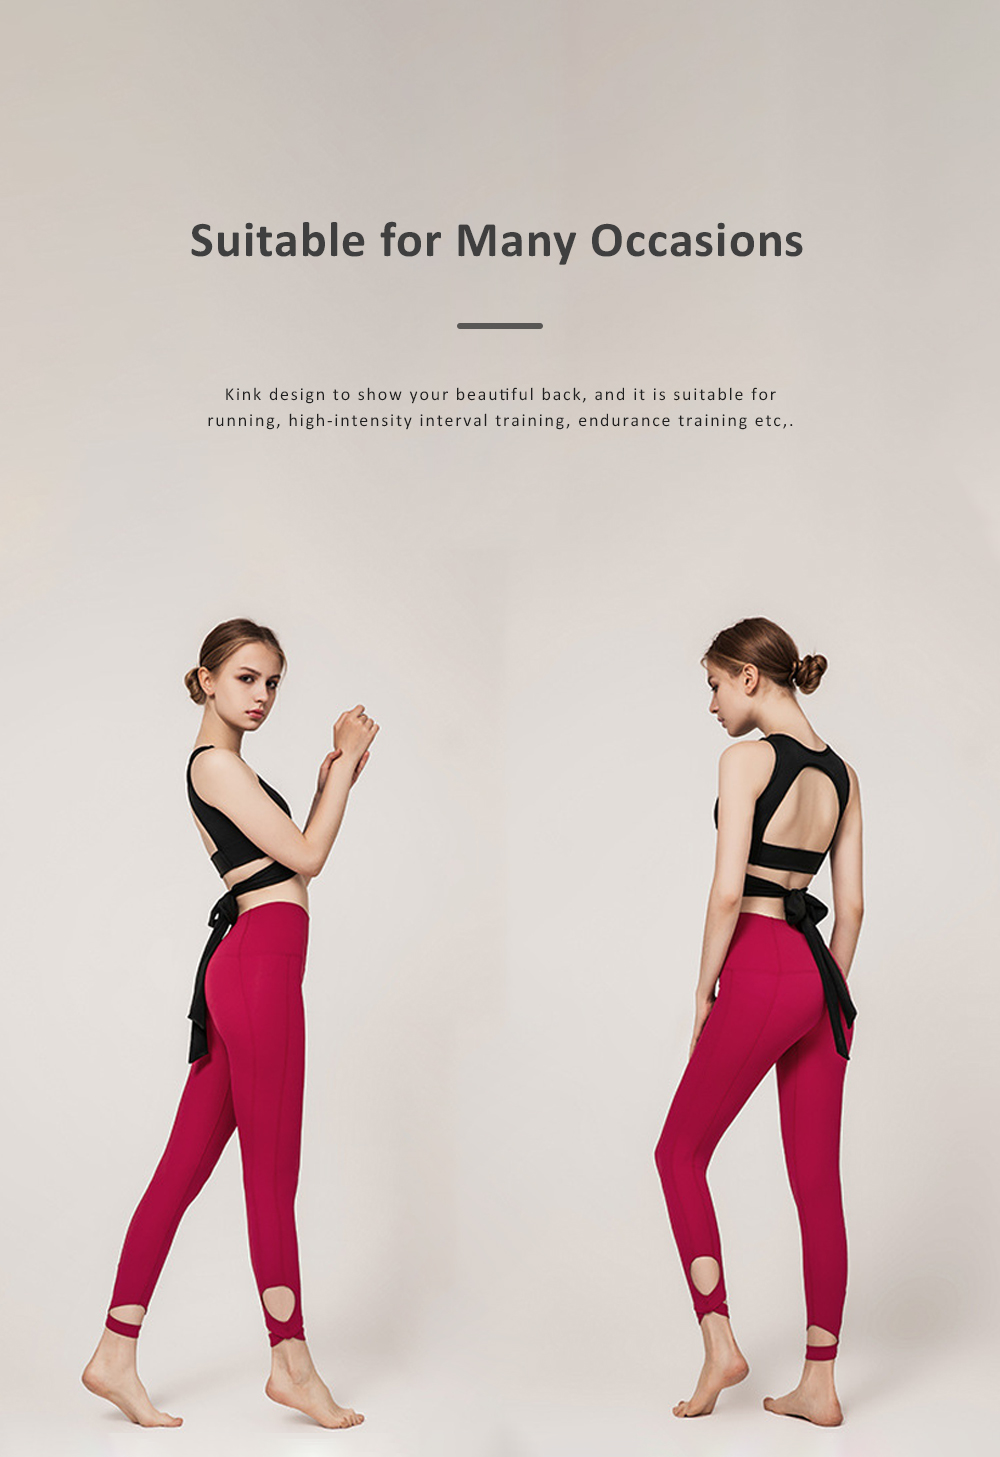 Women's Ultra Soft Yoga Suit With Strap-on Bra and High Waist Tummy Control Workout Leggings 4